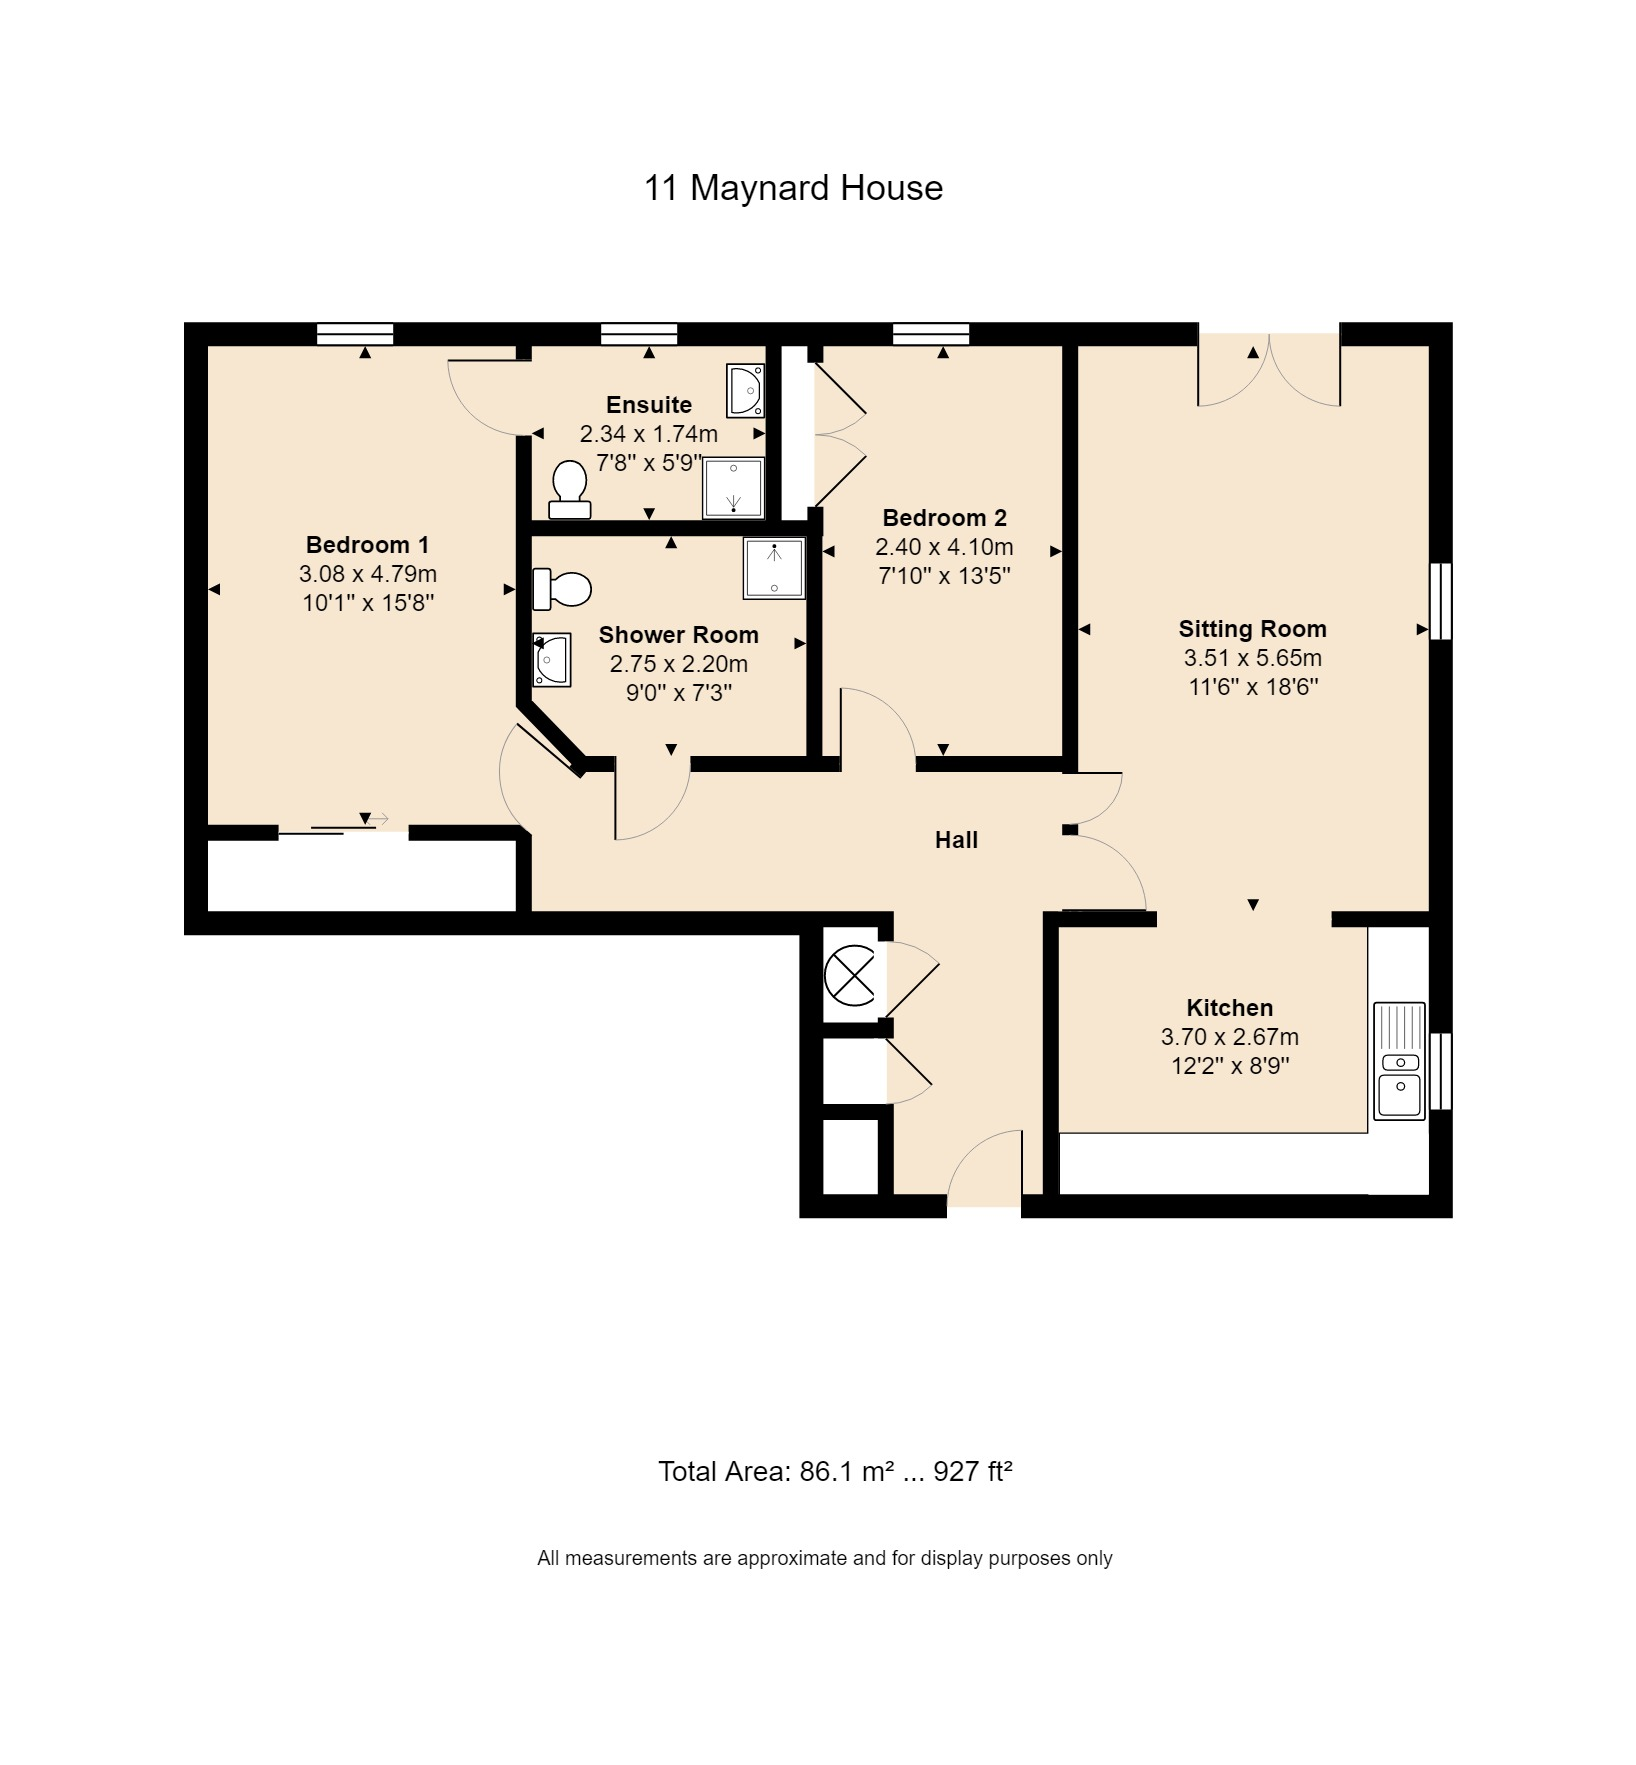 11 Maynard House Floorplan